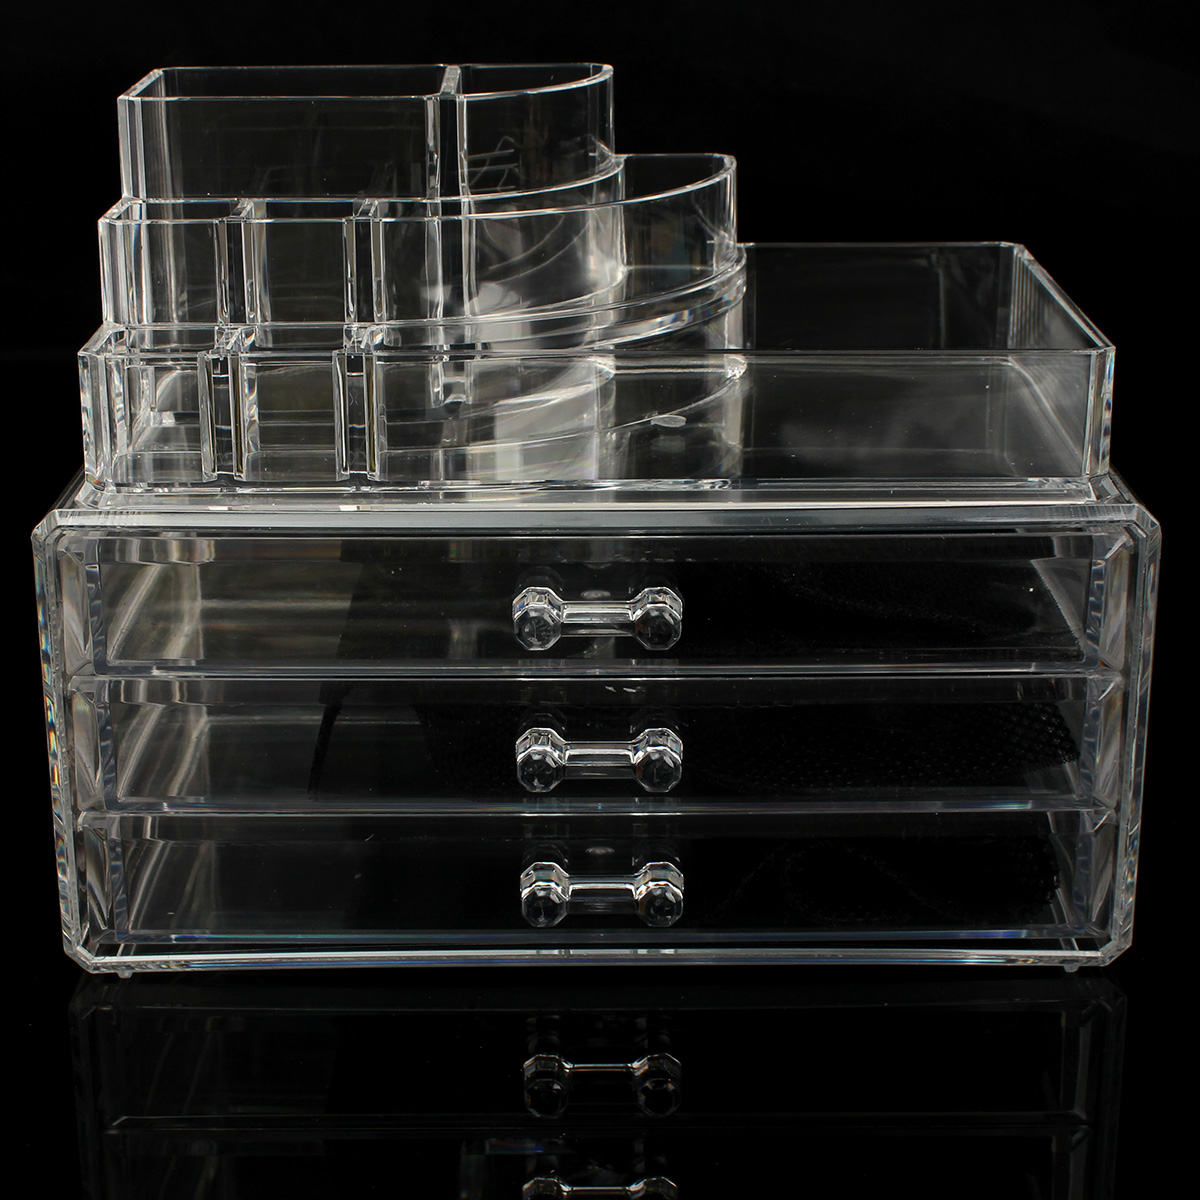 Acrylic Clear Makeup Case Display Box Organizer Holder